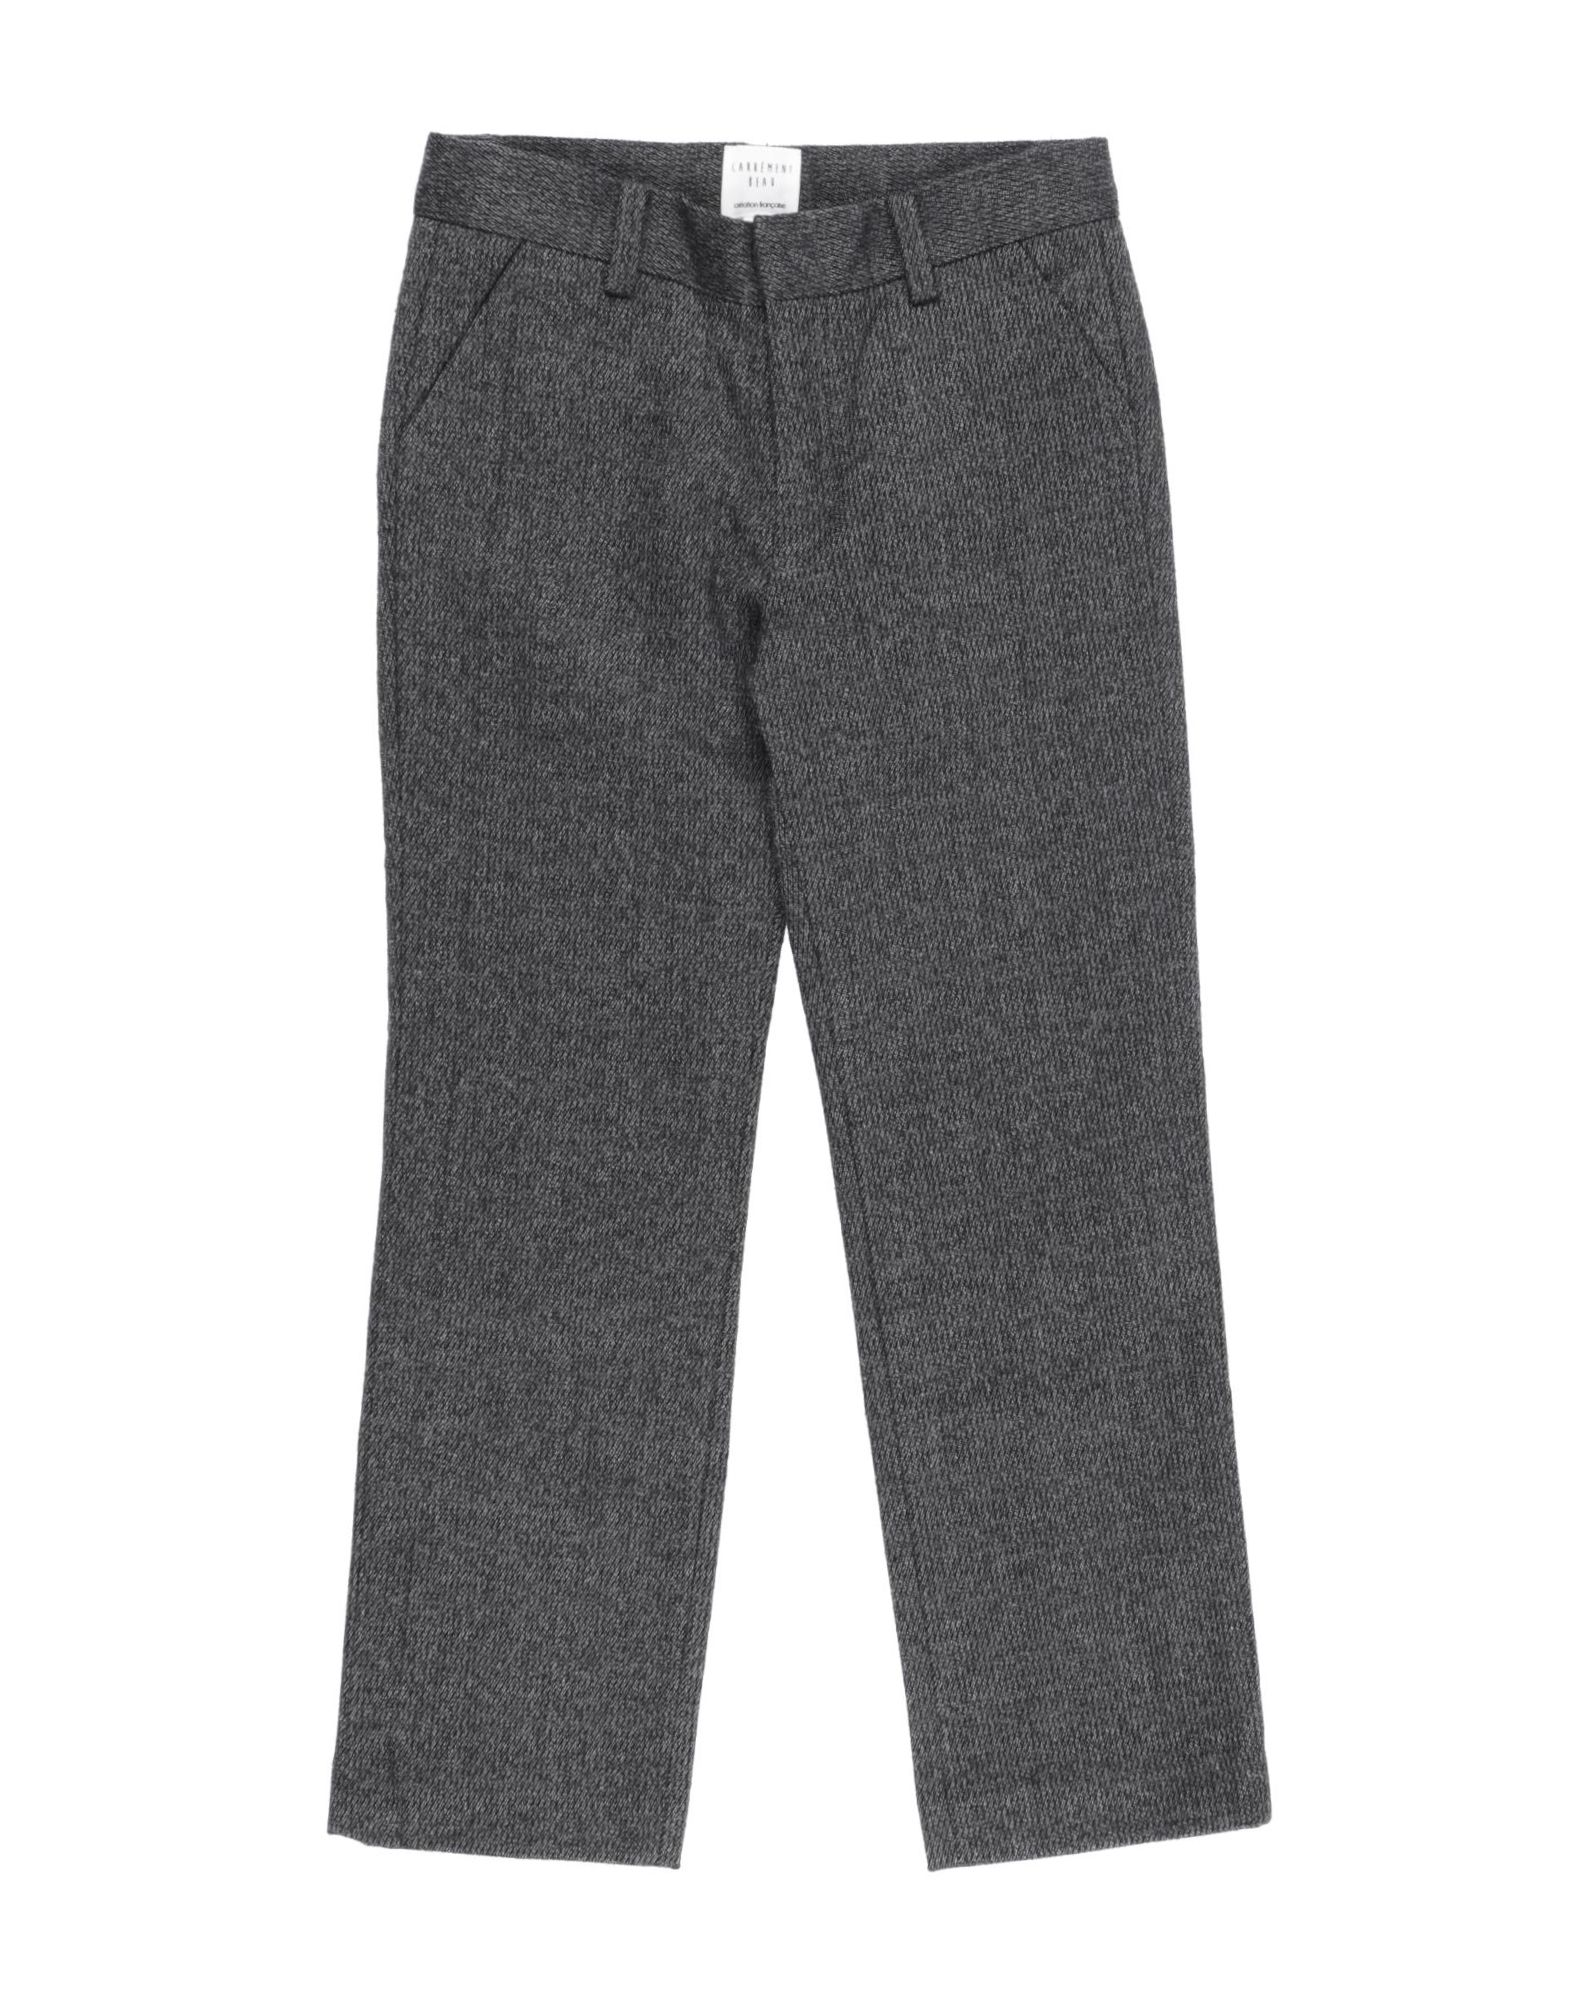 Carrèment Beau Kids' Casual Pants In Gray